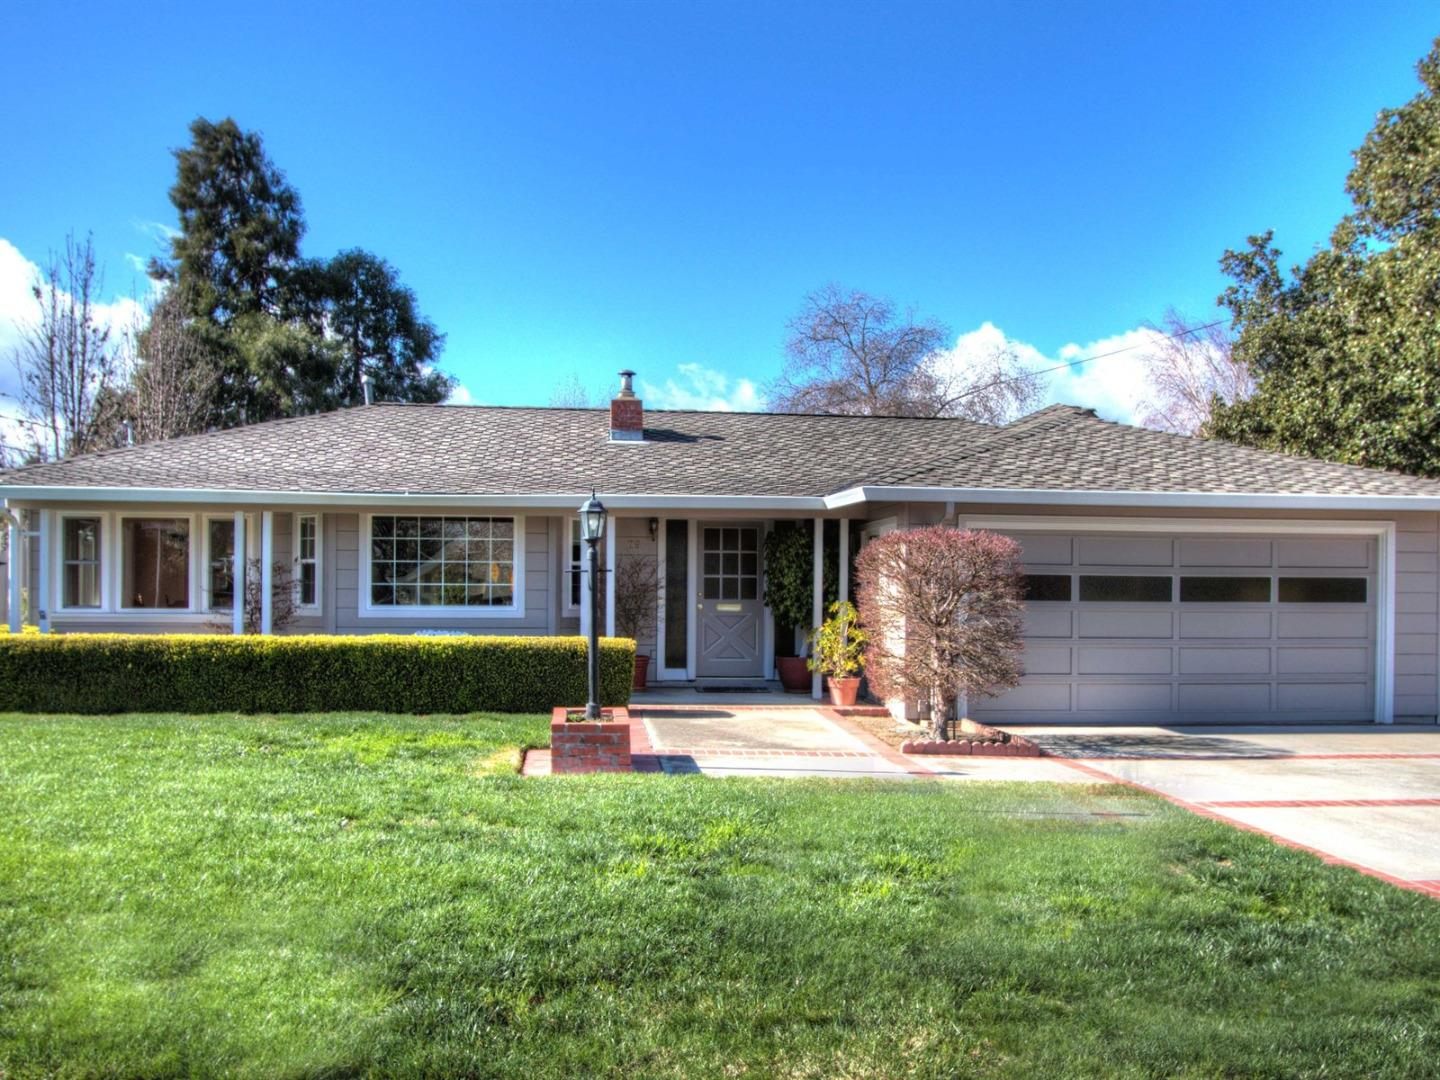 79 Amato Ave, Campbell, CA